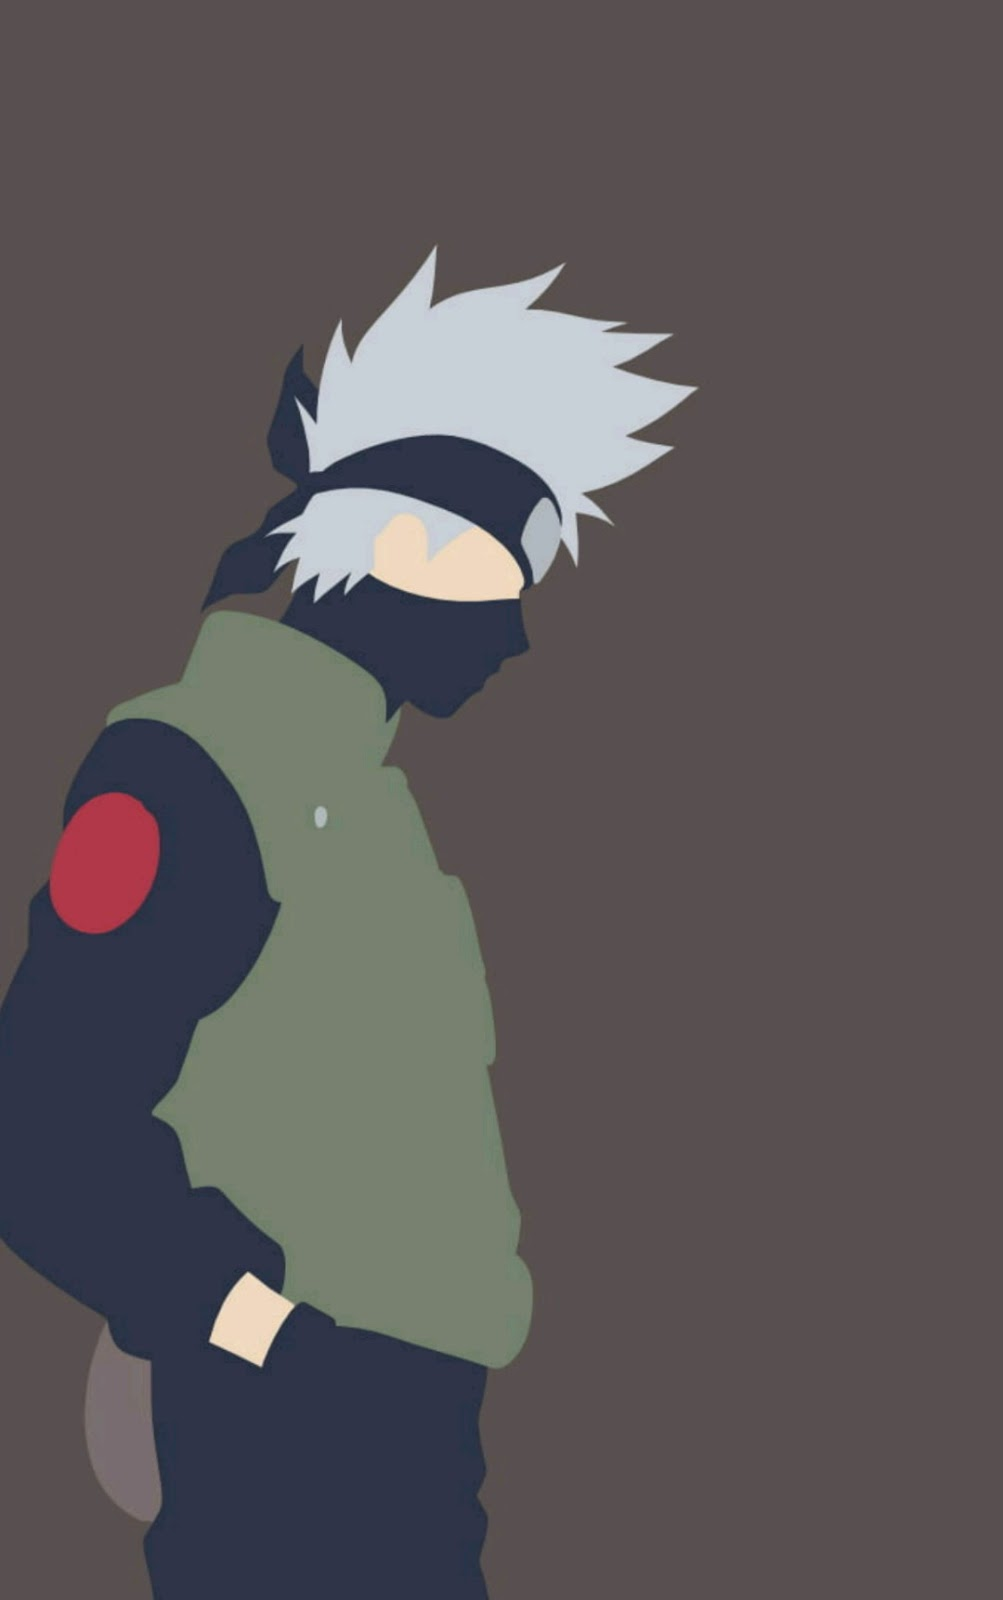 12 Download Wallpaper hatake kakashi vector untuk Android dan Whatsapp